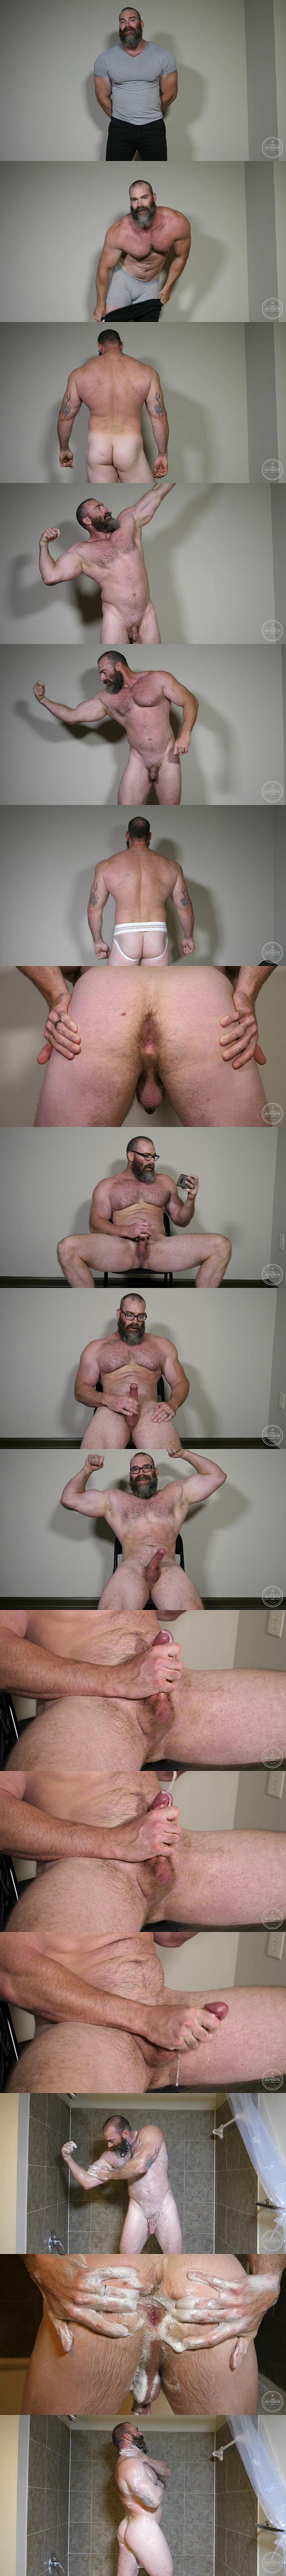 Muscle tower Slick Rick shows off his naked body and jerks off in Peek-A-Boo at Theguysite